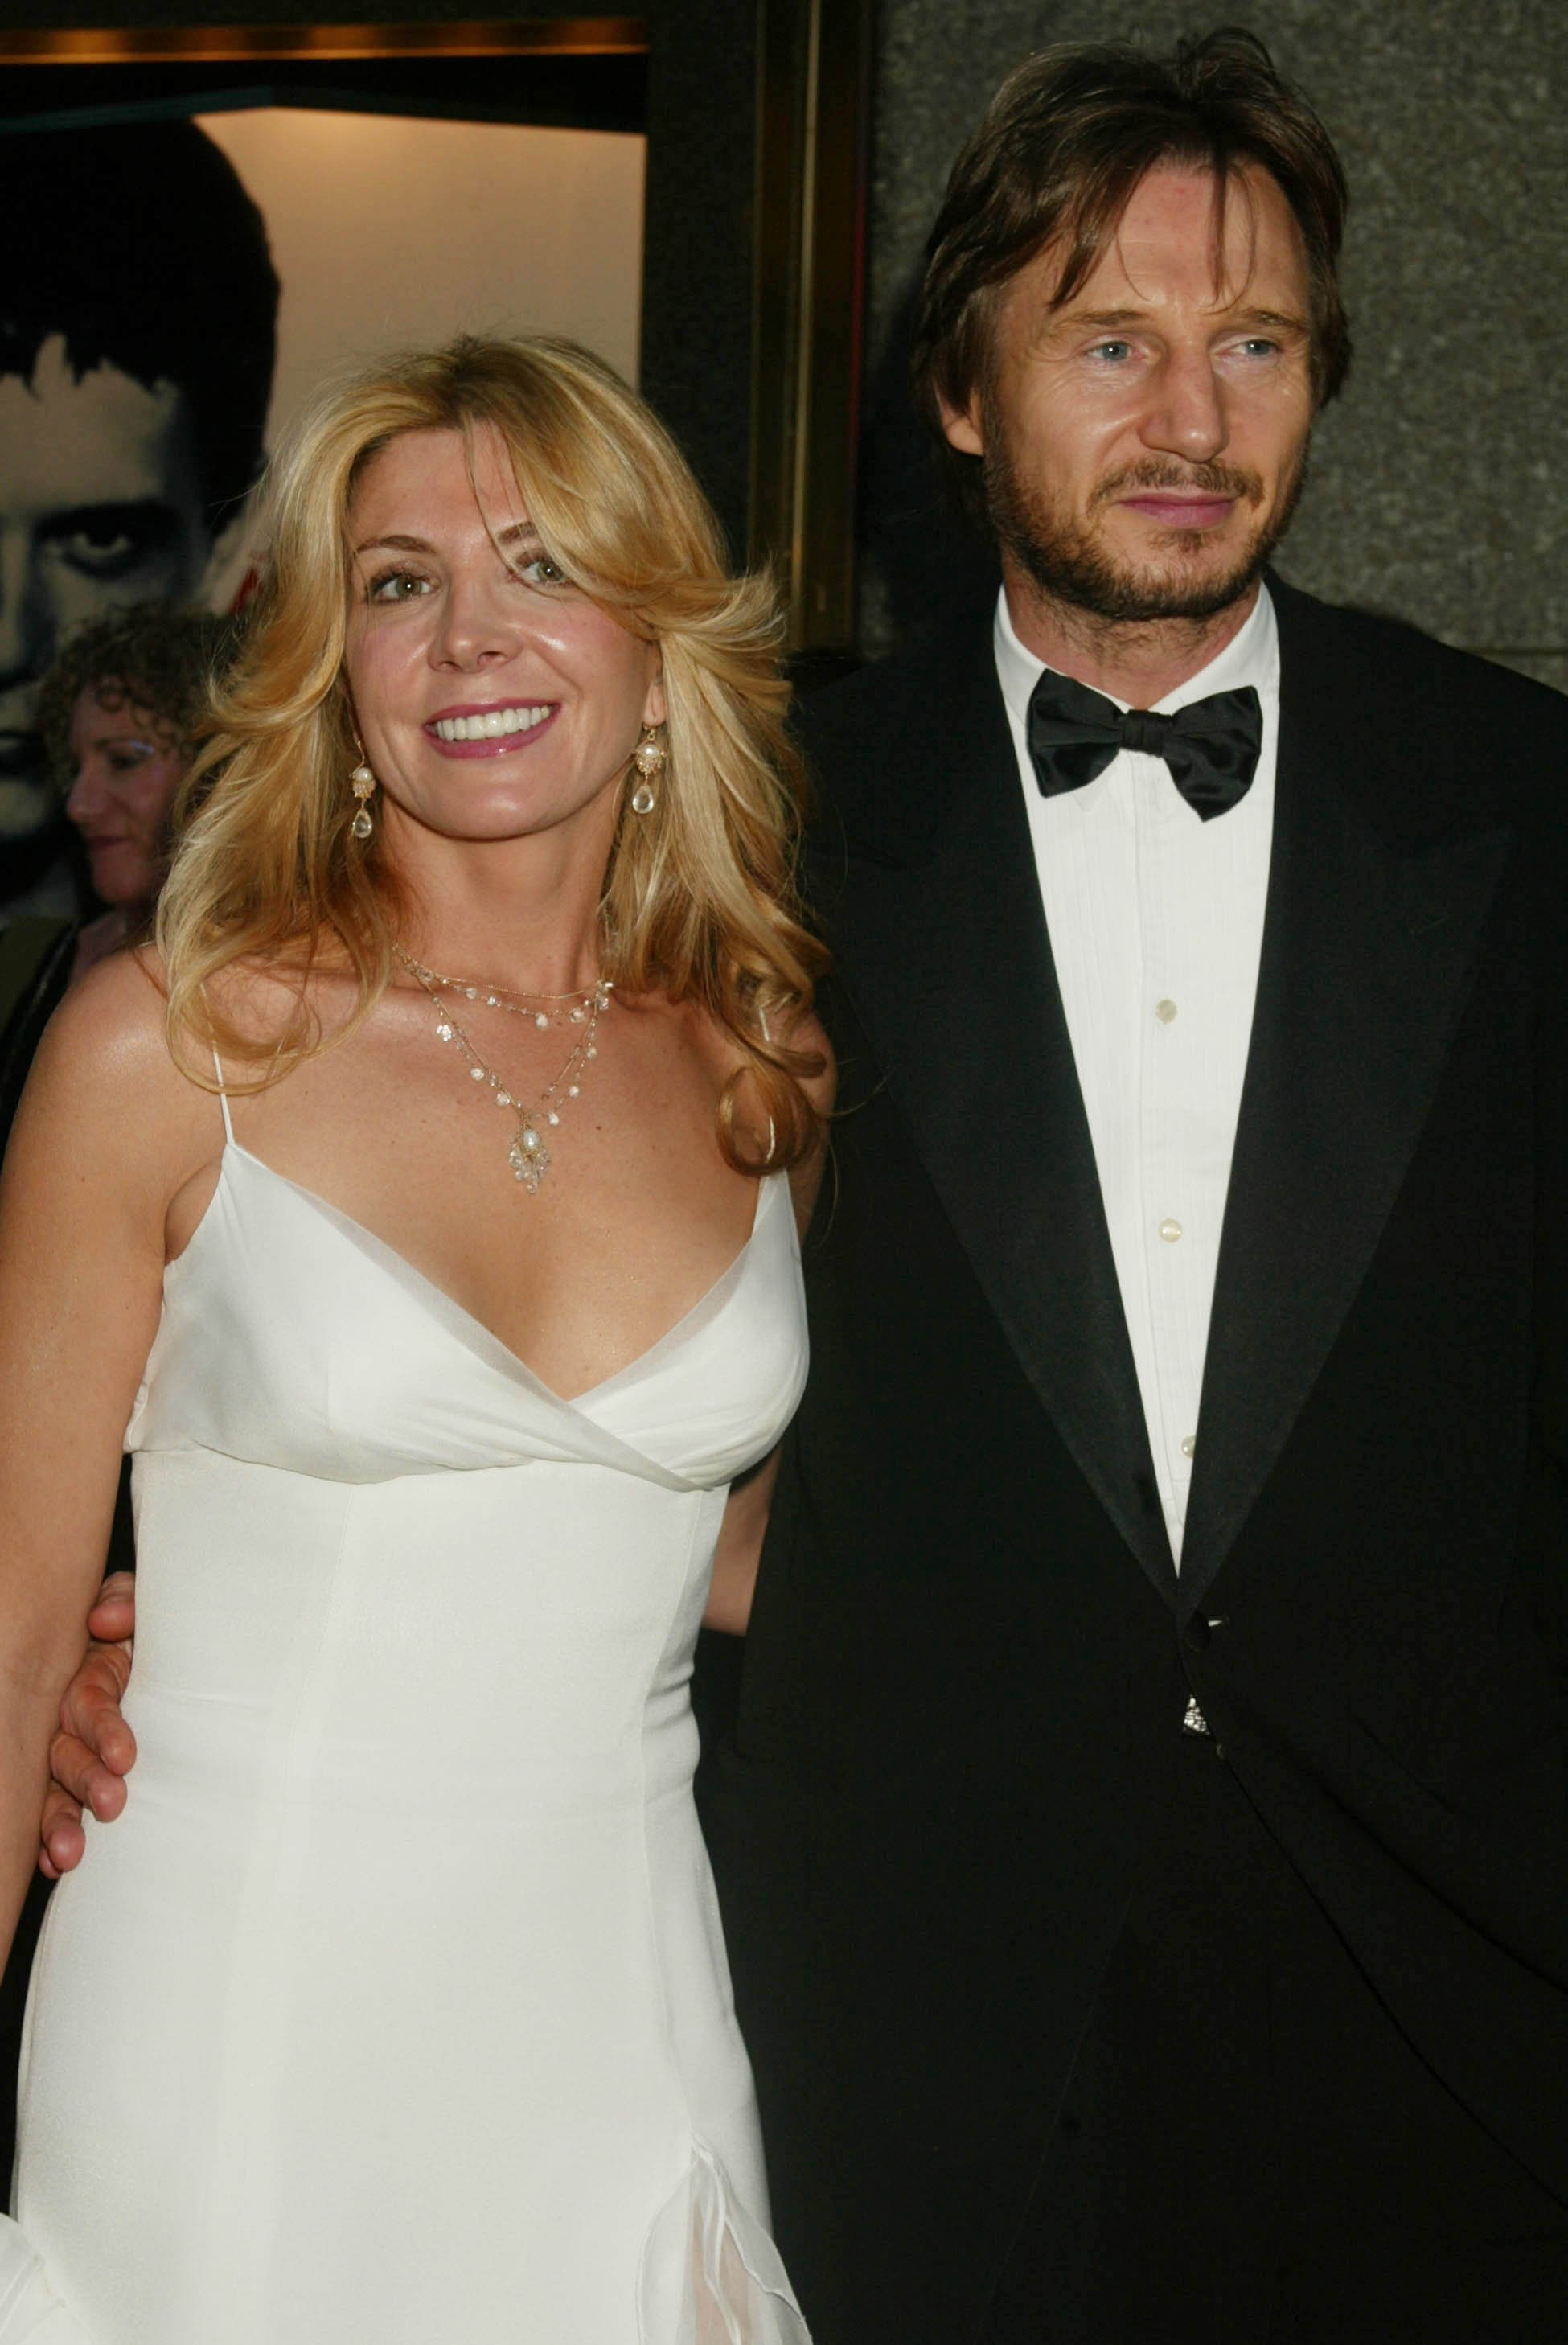 Liam Neeson y su esposa Natasha. | Imagen: Getty Images/Global Images Ukraine